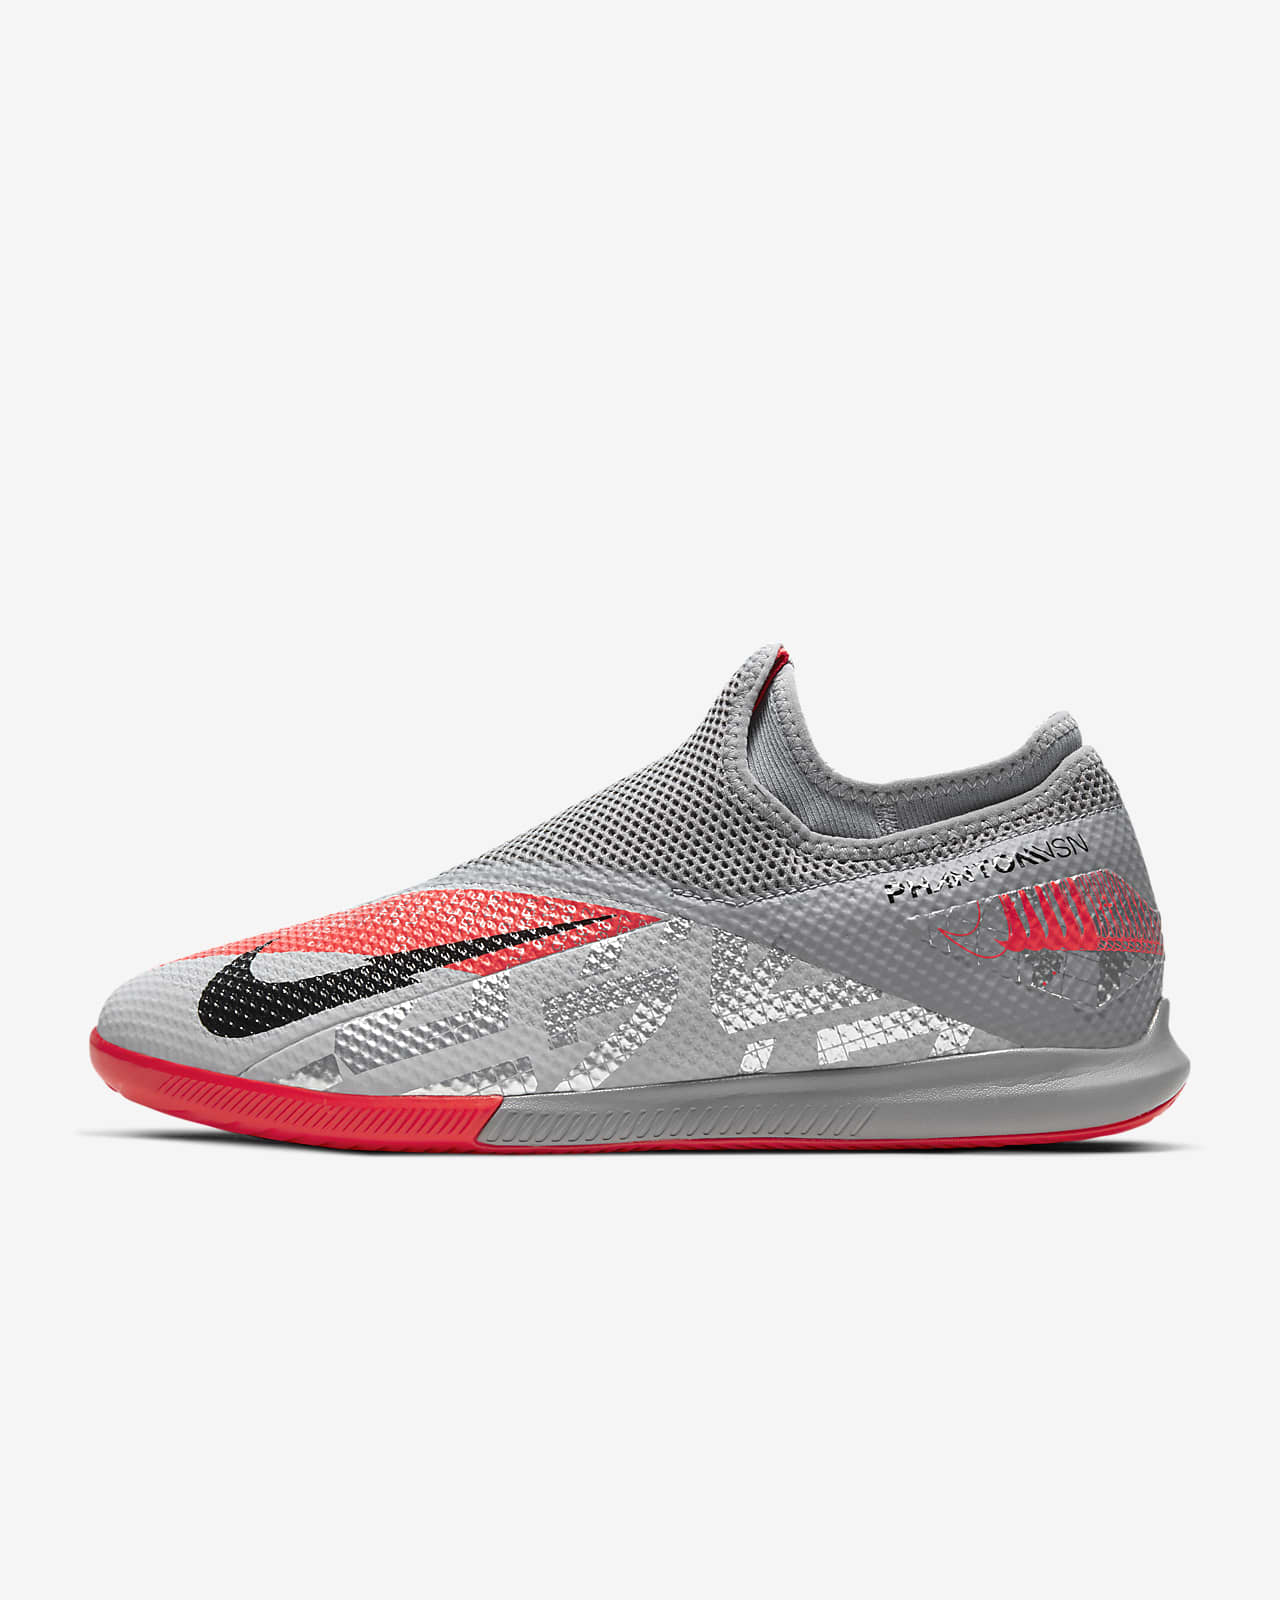 Nike Phantom Vision 2 Academy Dynamic Fit IC Indoor Court Football Shoe